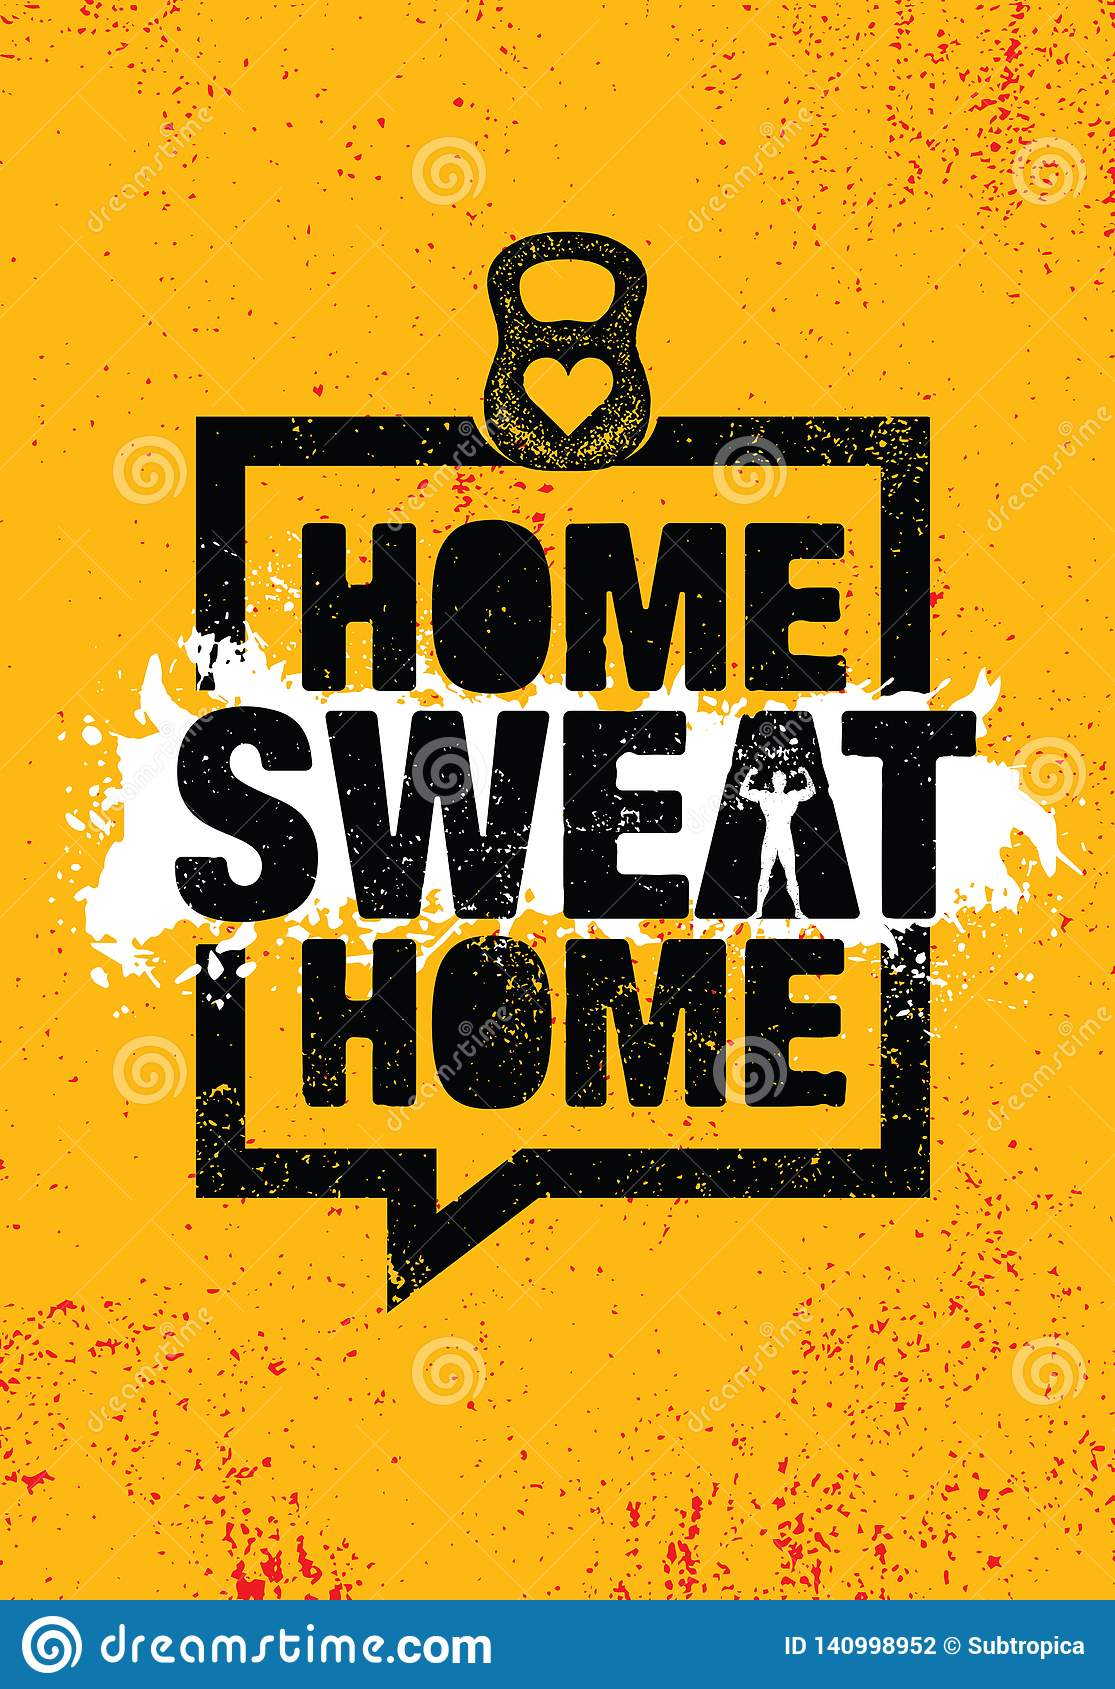 Gym Sweat Stock Illustrations 2 365 Gym Sweat Stock Illustrations Vectors Clipart Dreamstime